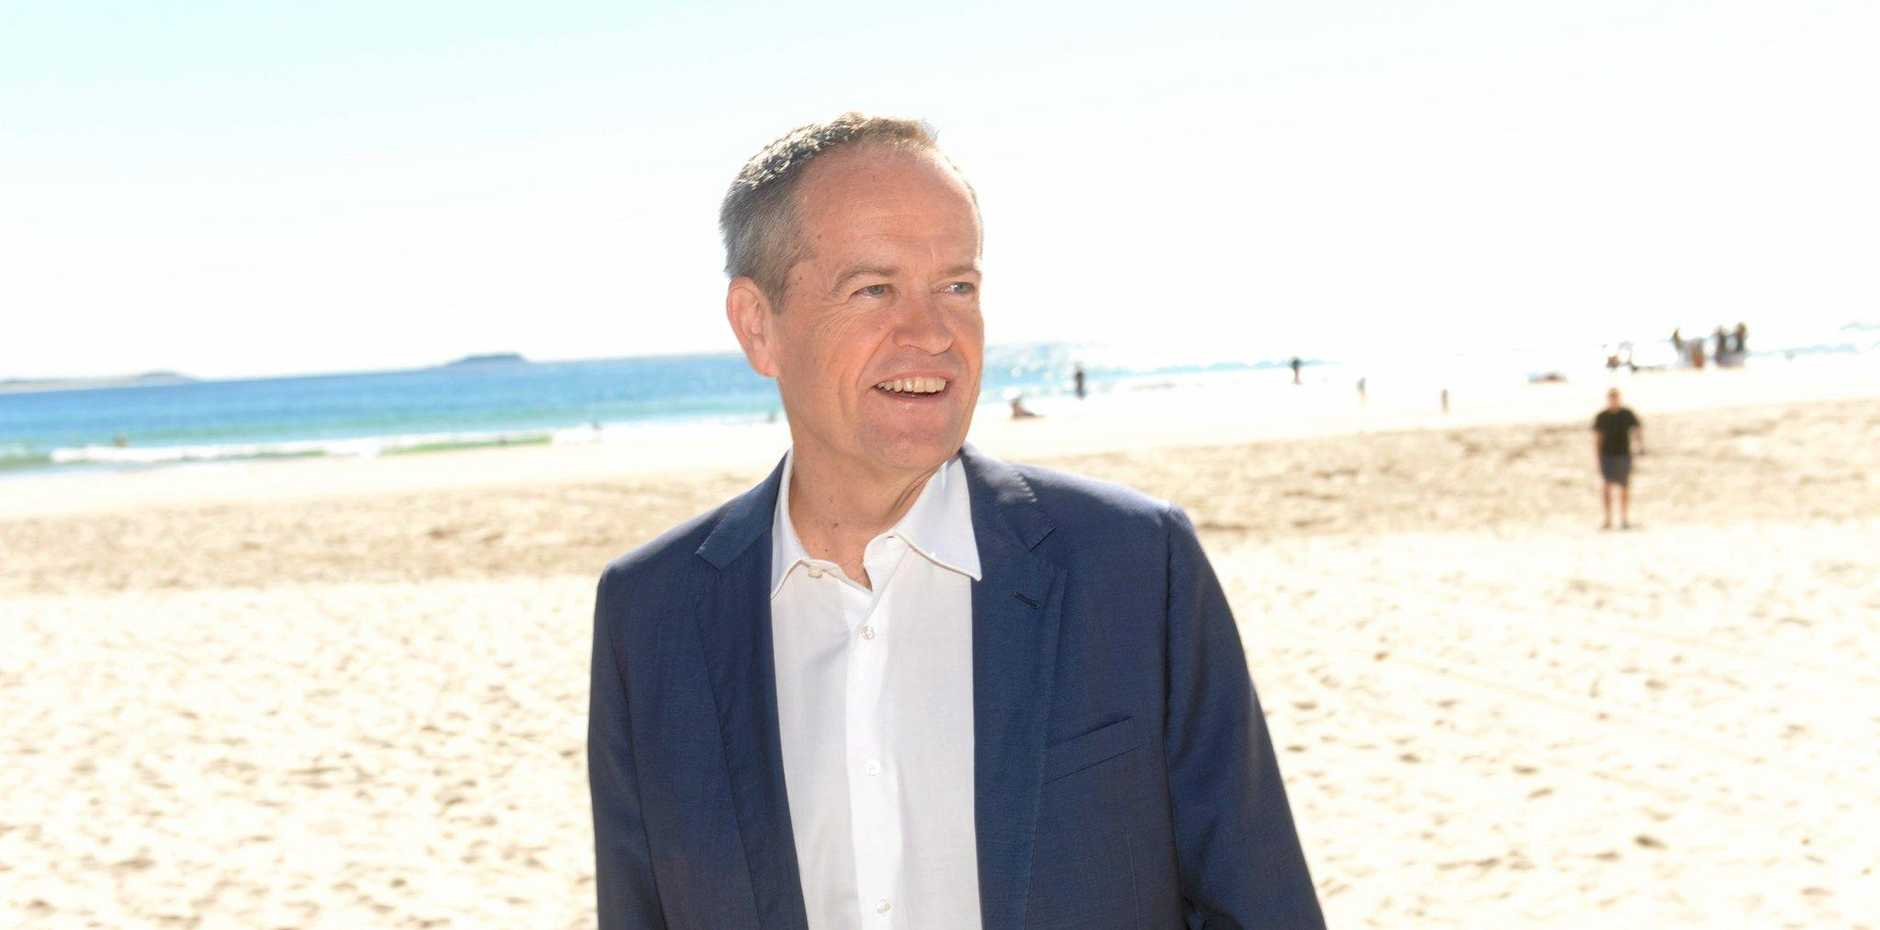 Opposition leader Bill Shorten in Kingscliff on Sunday, May 15, 2016.